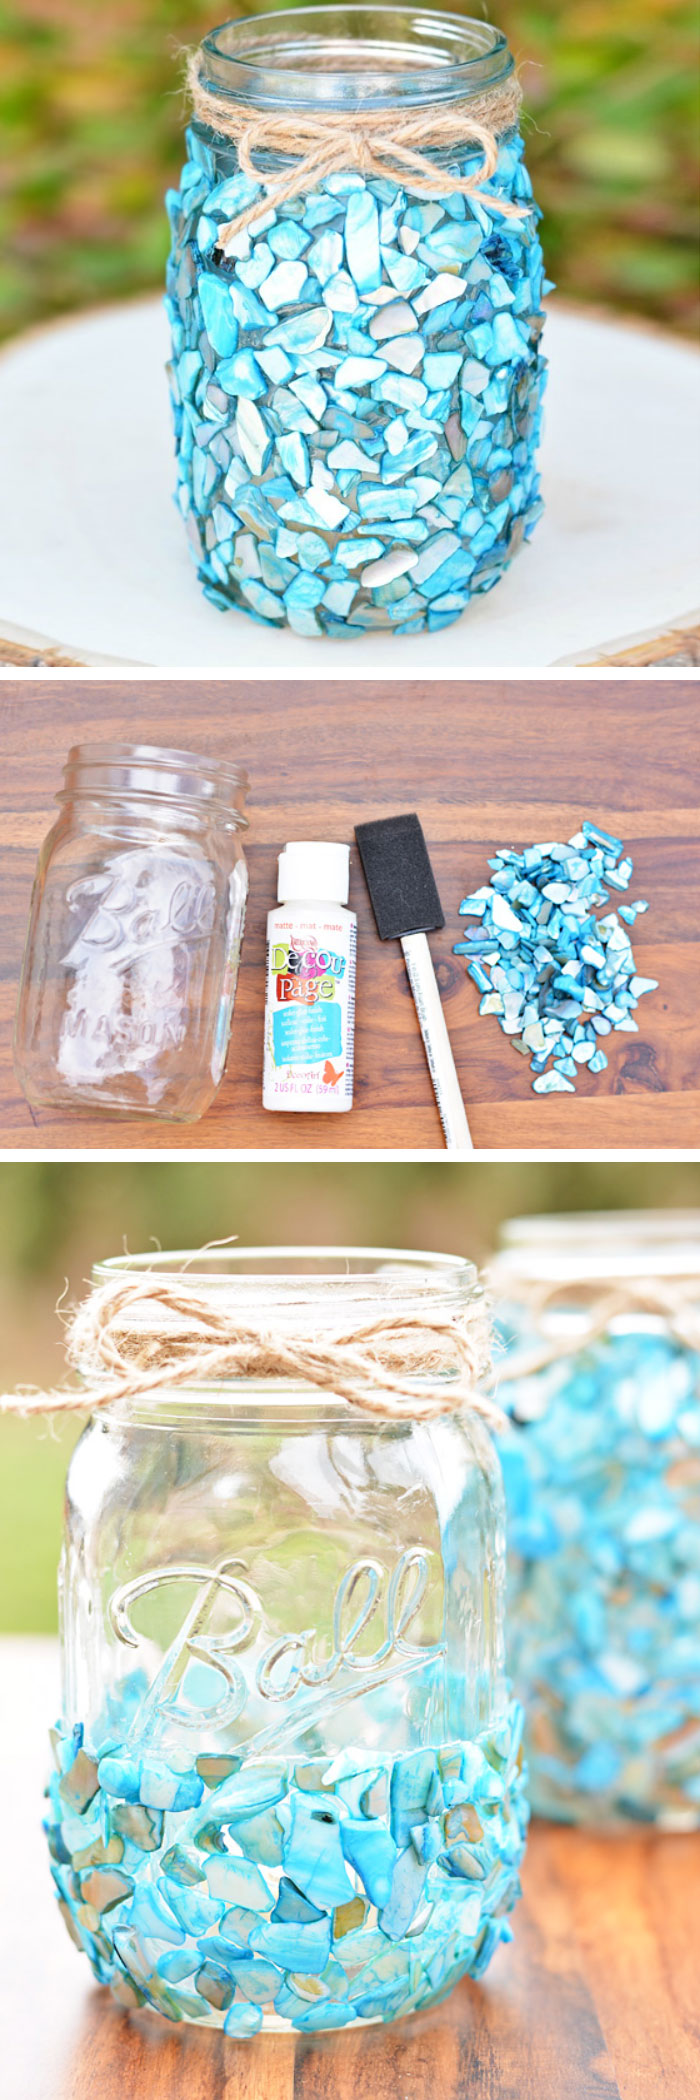 18 DIY Seashell Decorating and Craft Ideas Mason jar crafts